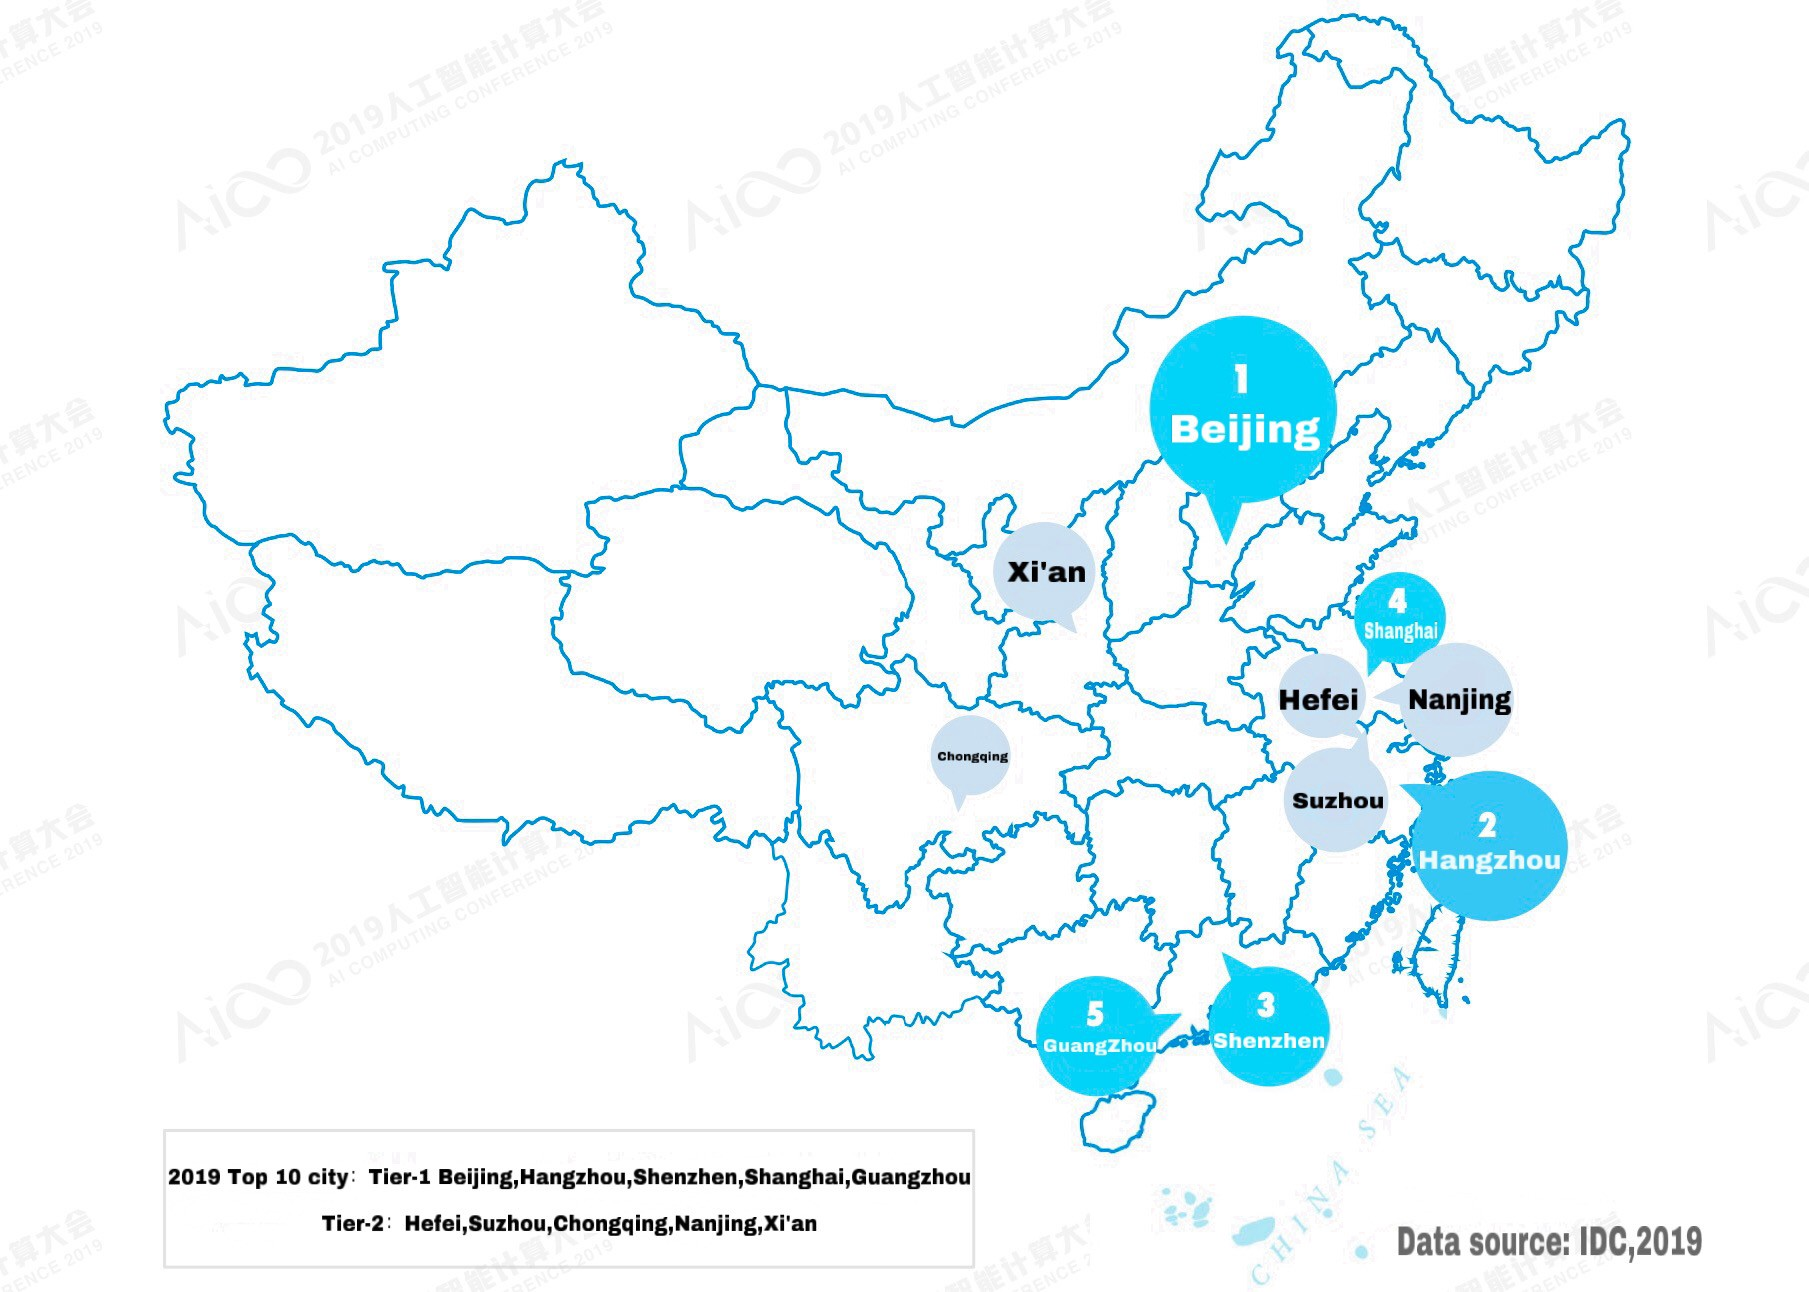 Top 10 Chinese Cities for AI Development: Beijing Ranks №1 China Cities Map on map of china, map china guangxi region, map in us, map se usa, map japan, map china climate, map venezuela flag, map china deserts, map from europe, map western europe, map hong kong, map china travel, valencia-venezuela cities, map china airports, map china tourism, map china provinces, map of asia, map in europe, map north africa and middle east, map in india,